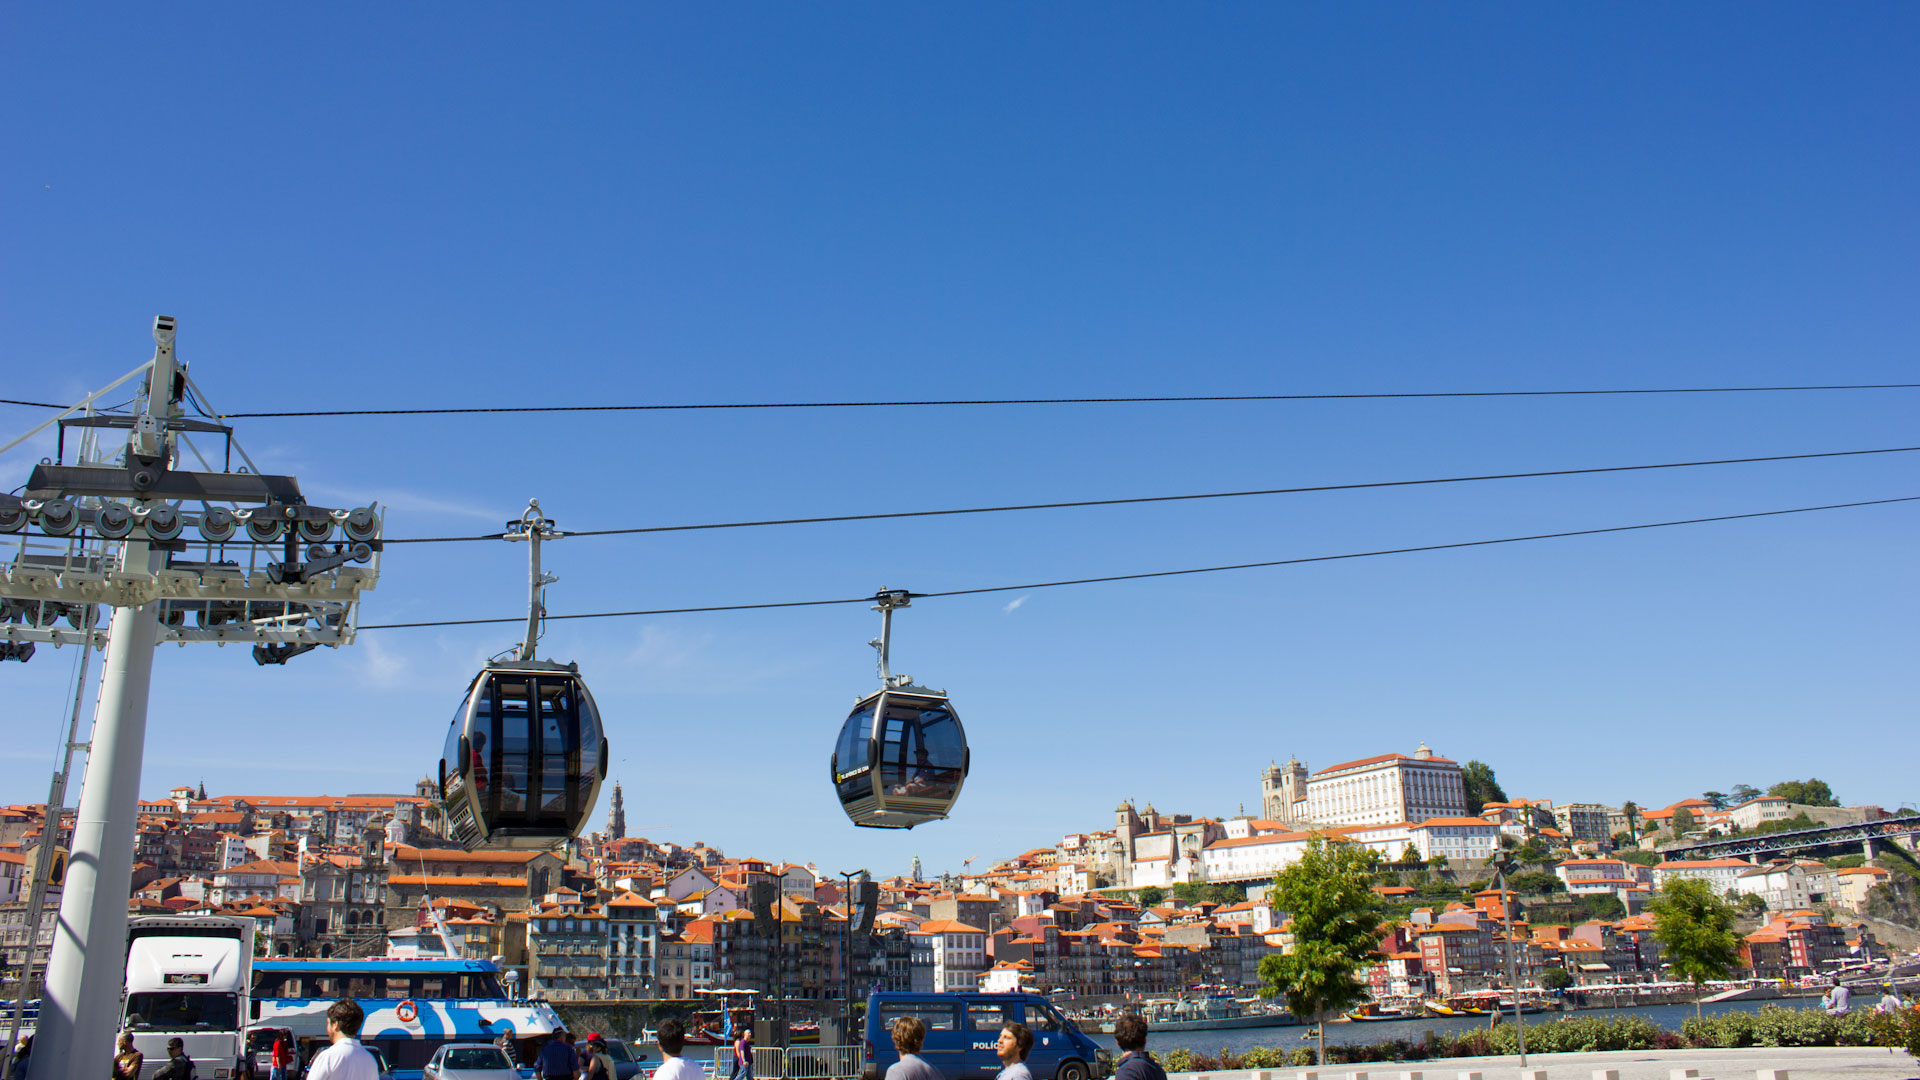 Cable cars in Vila Nova de Gaia